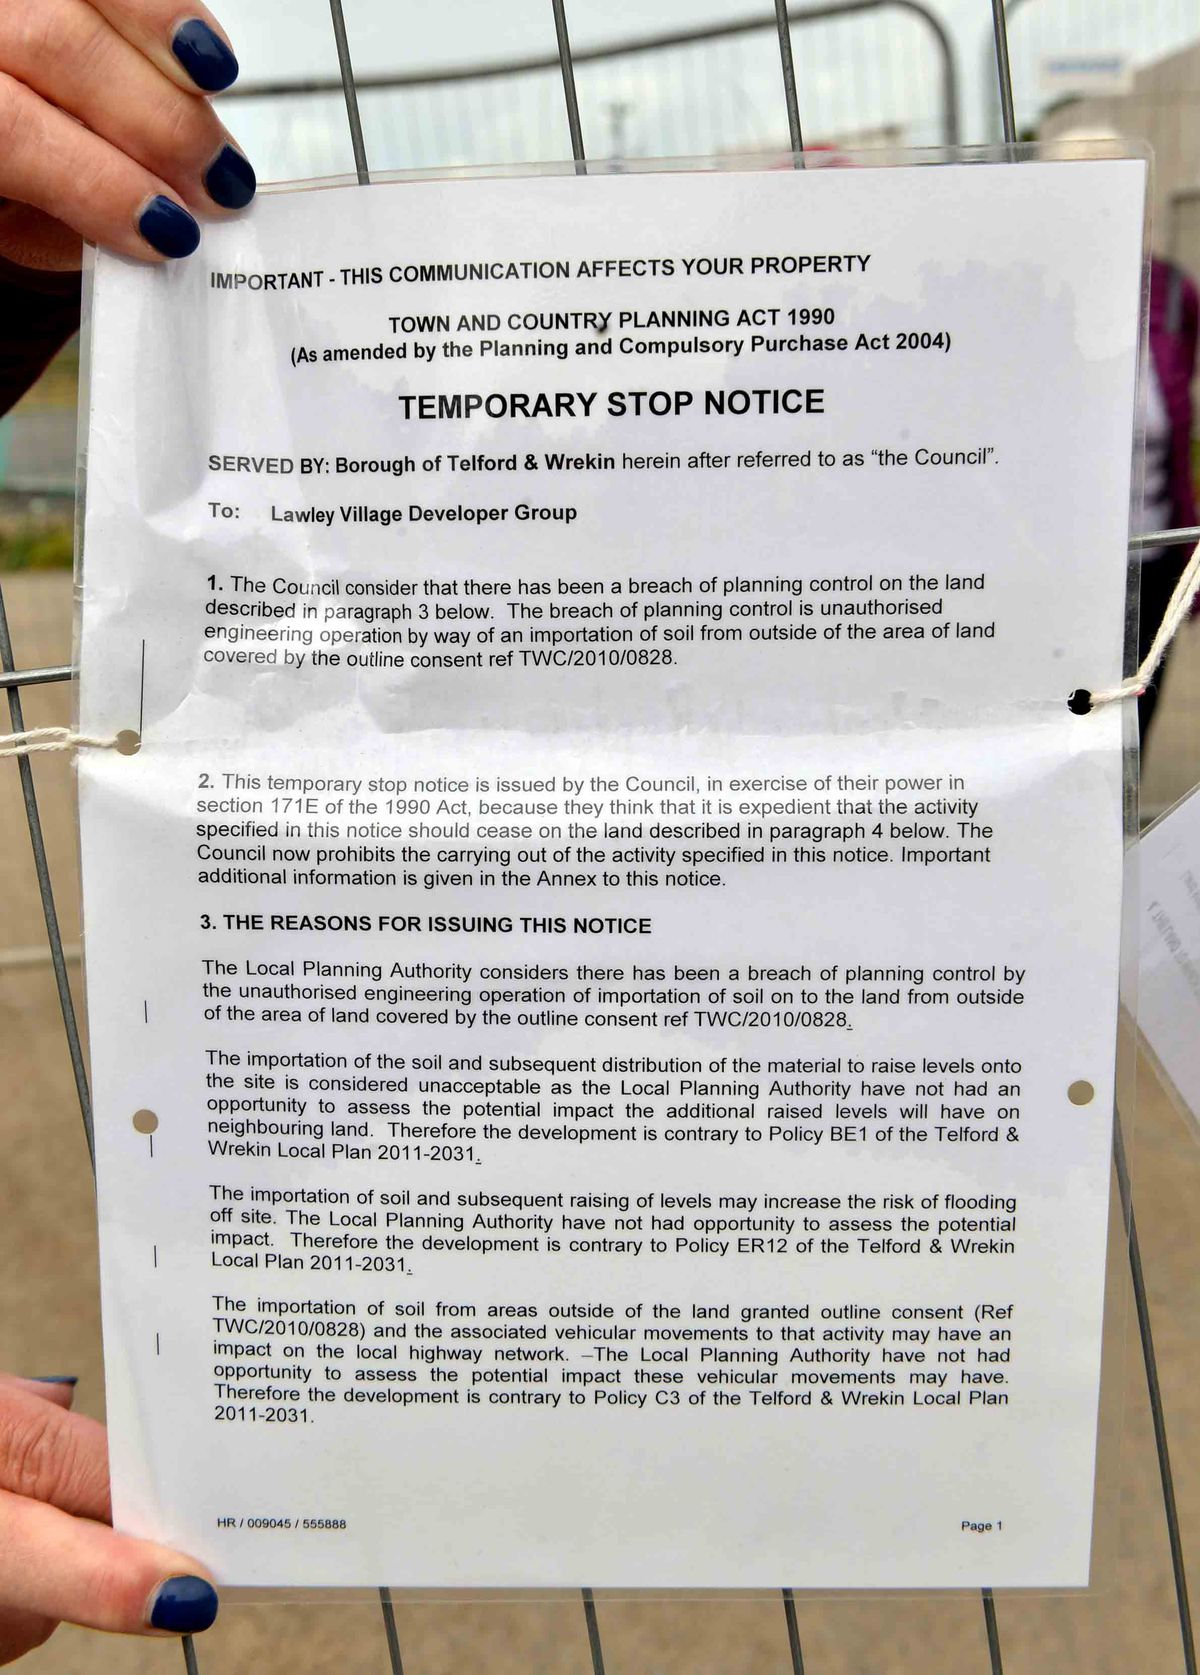 Work on Phase 11 was given a temporary stop notice by Telford & Wrekin Council in August